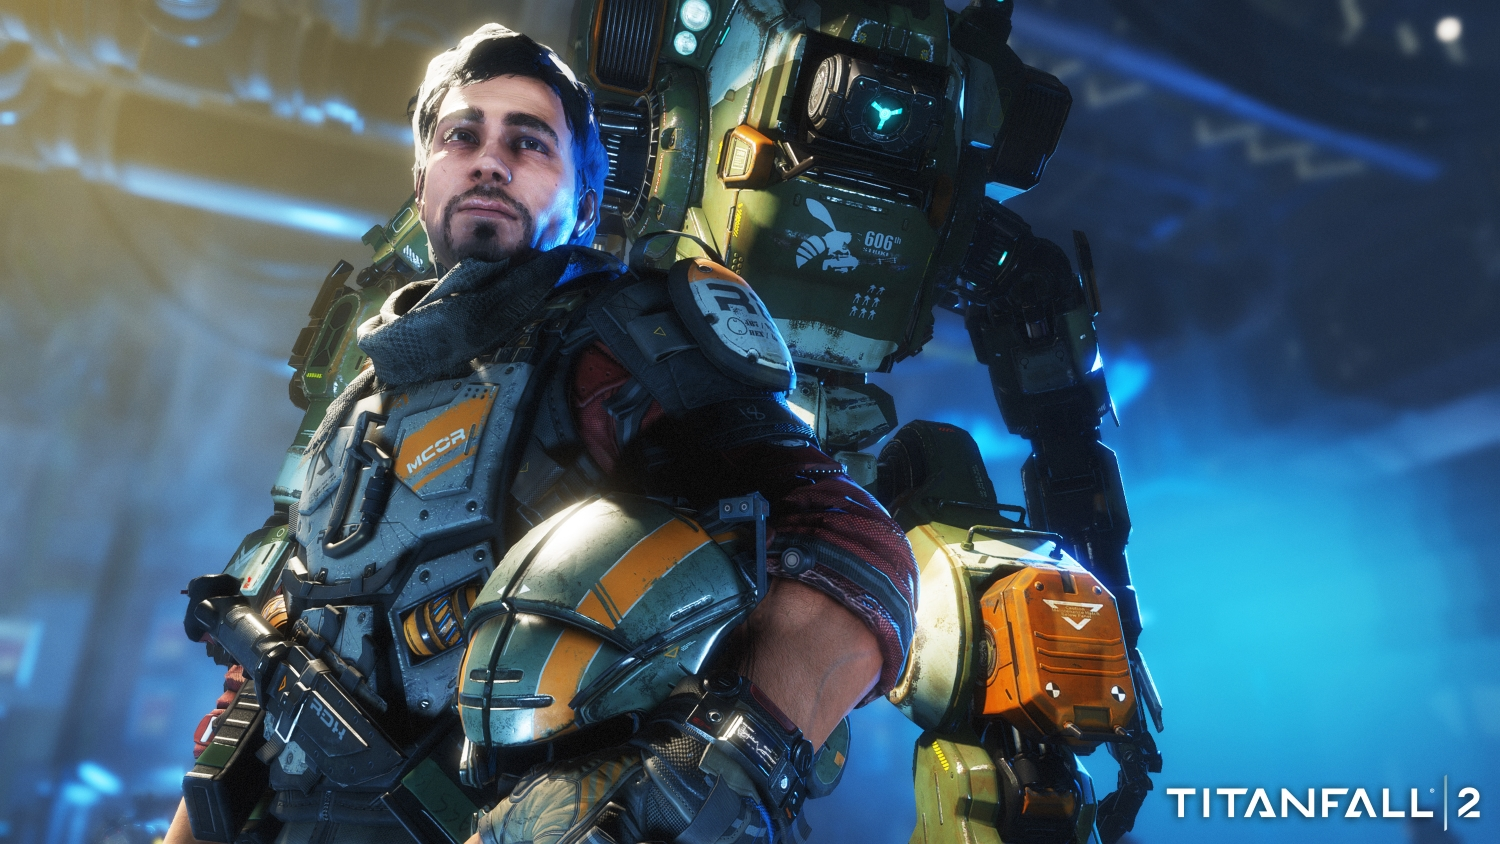 Titanfall 2 - the story mode casts you as a brand new character